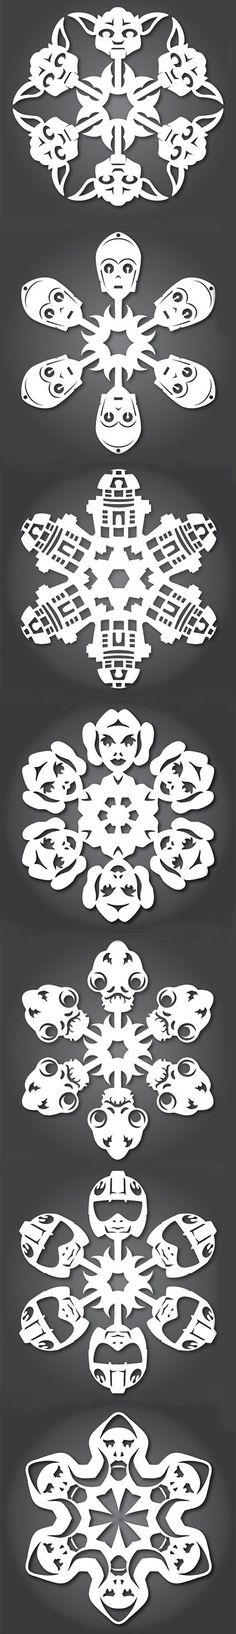 5) Ready for your very own Hoth winter wonderland?  Transform your home into the snowy plains of Hoth with these outrageously cute Star Wars Snowflakes.  This one's a little more complex than some of the other videos on the list, so be sure to watch this video tutorial first: